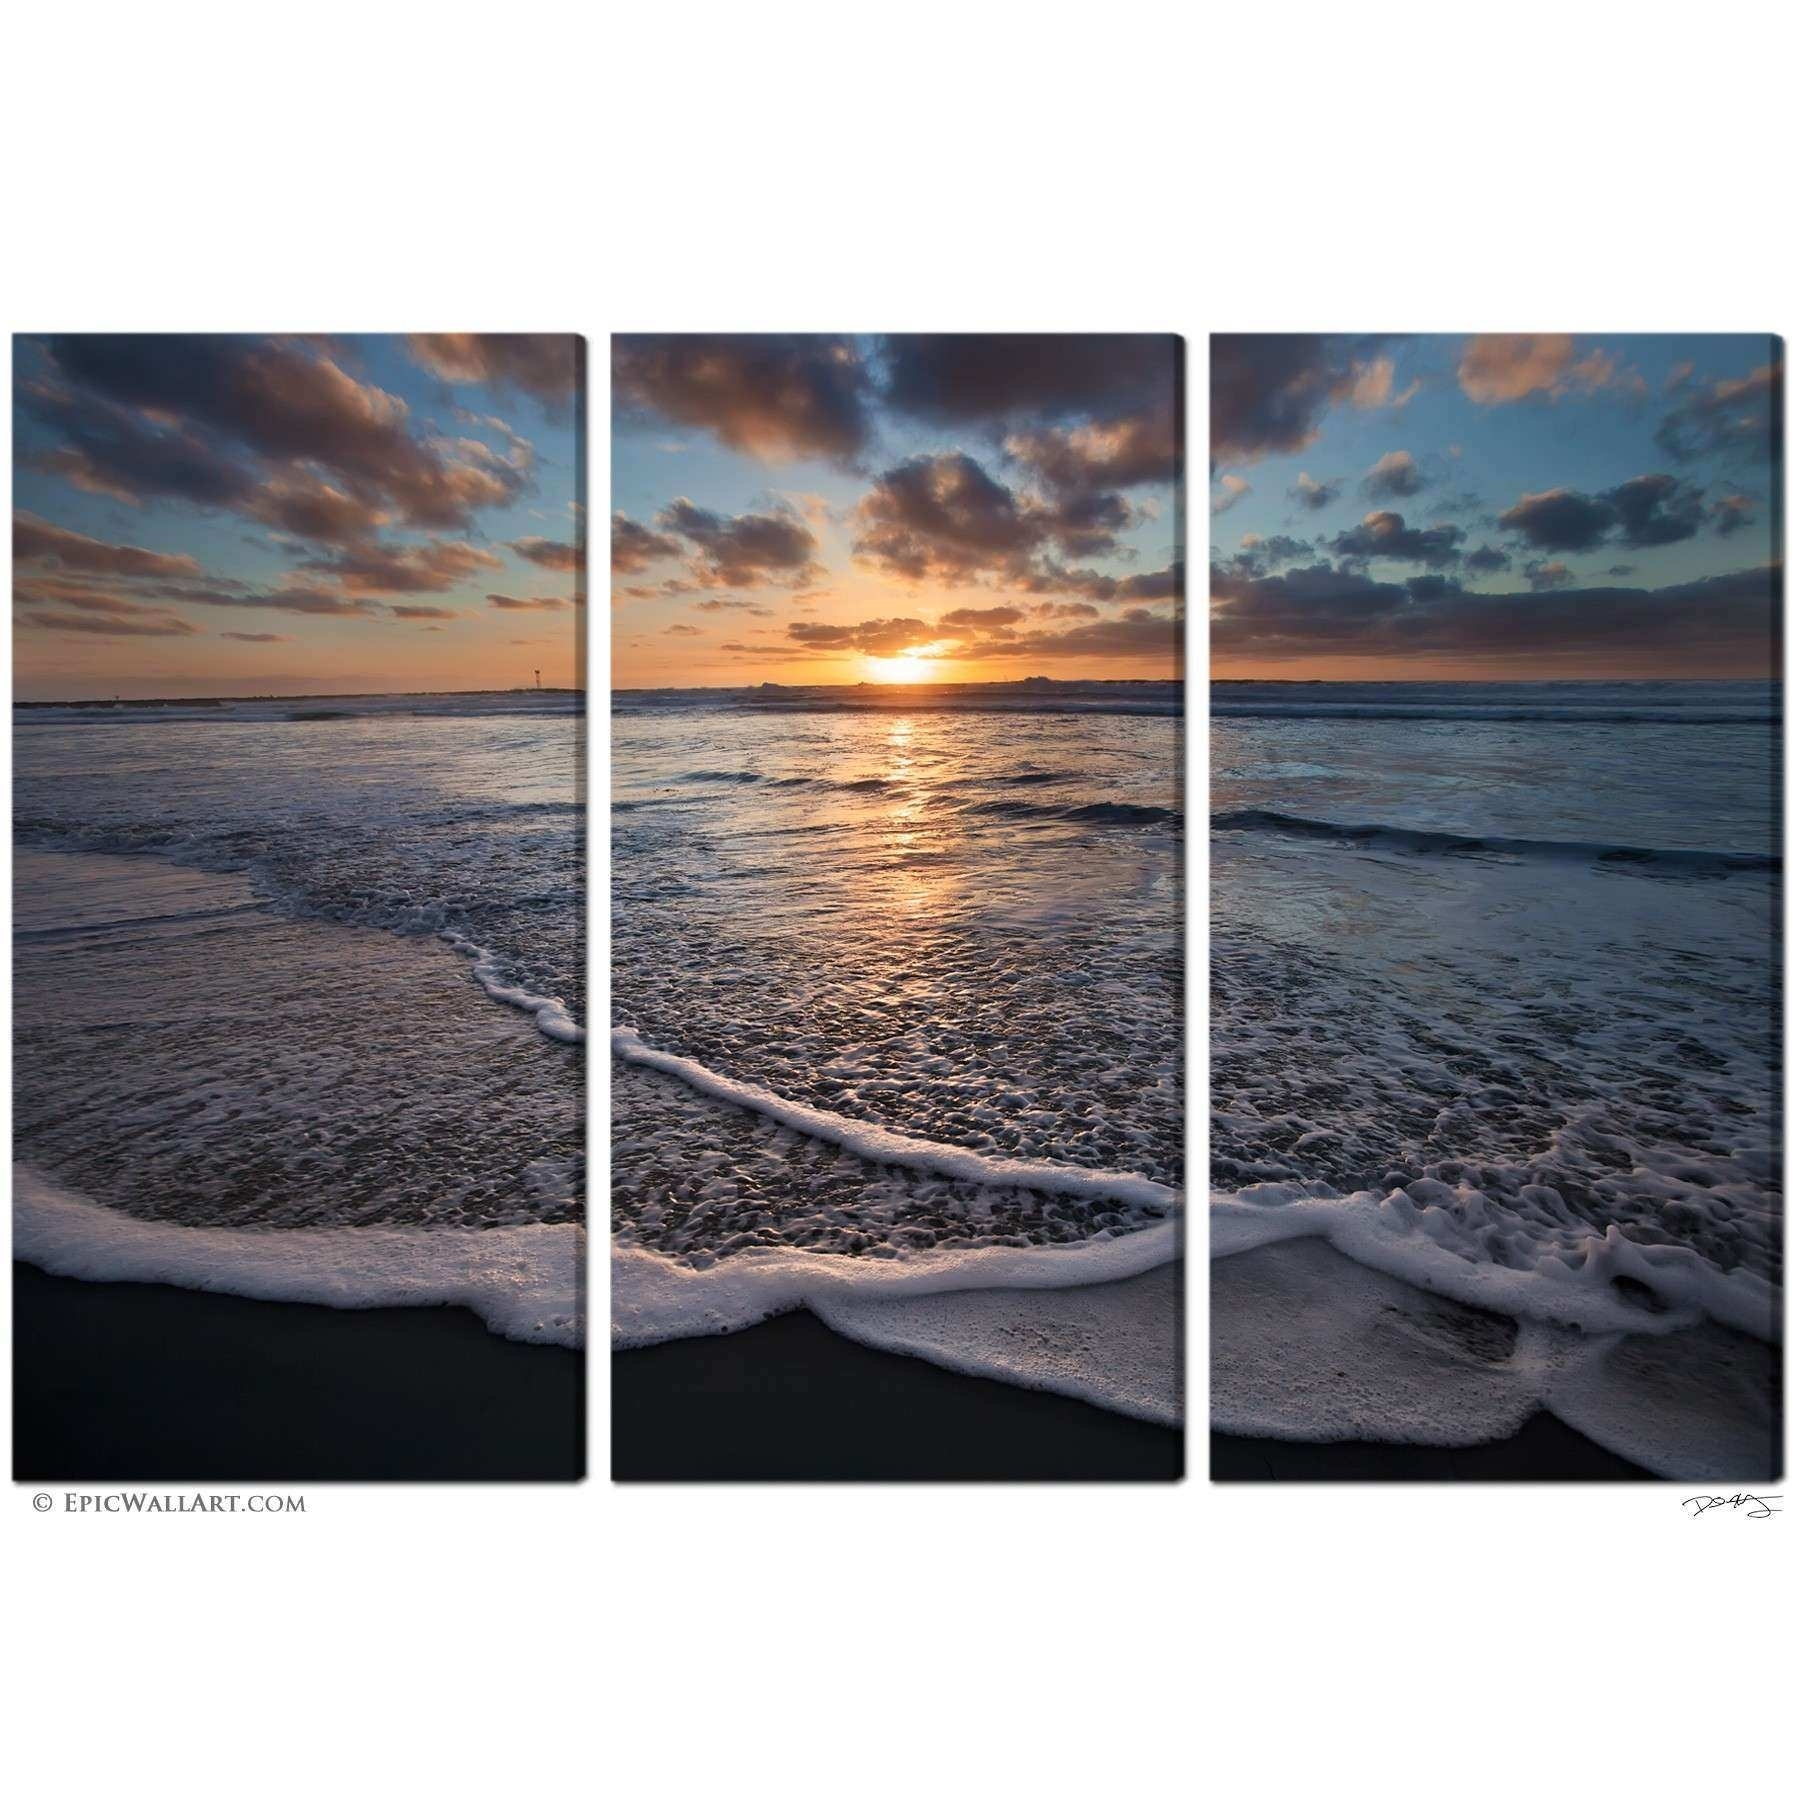 Multi Piece Wall Art Unique 3 Piece Canvas Wall Art Sets Takuice With Regard To Latest Multi Piece Wall Art (View 13 of 20)